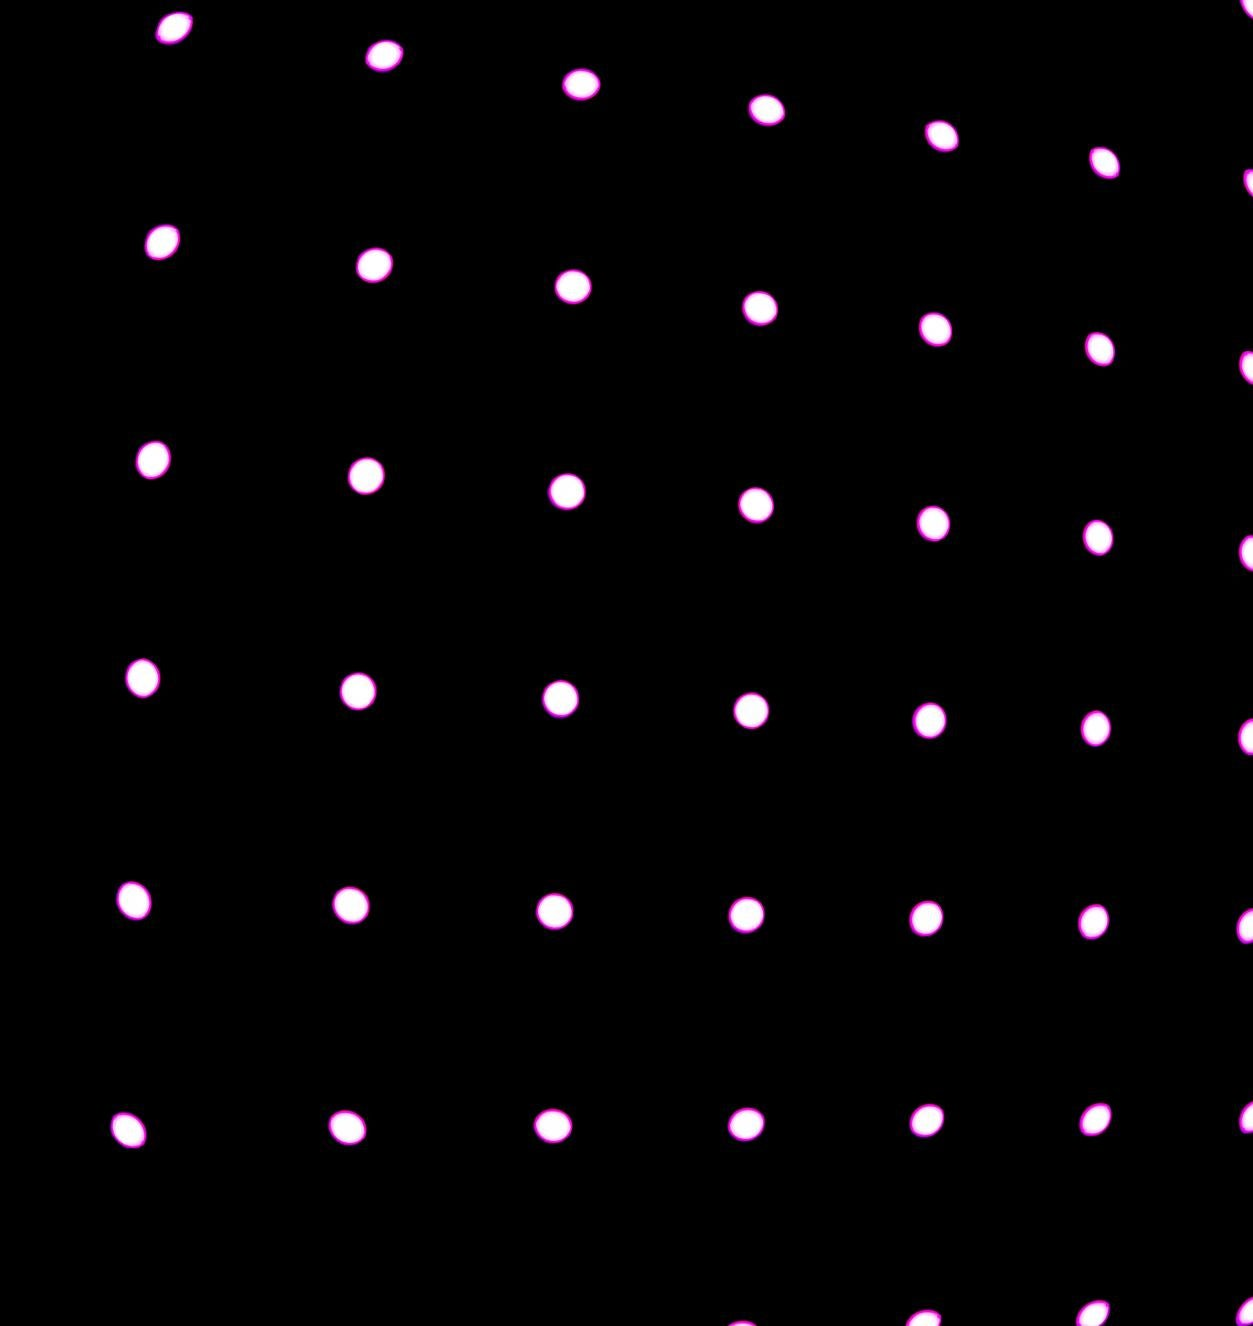 Bright dots in grid formation on black background